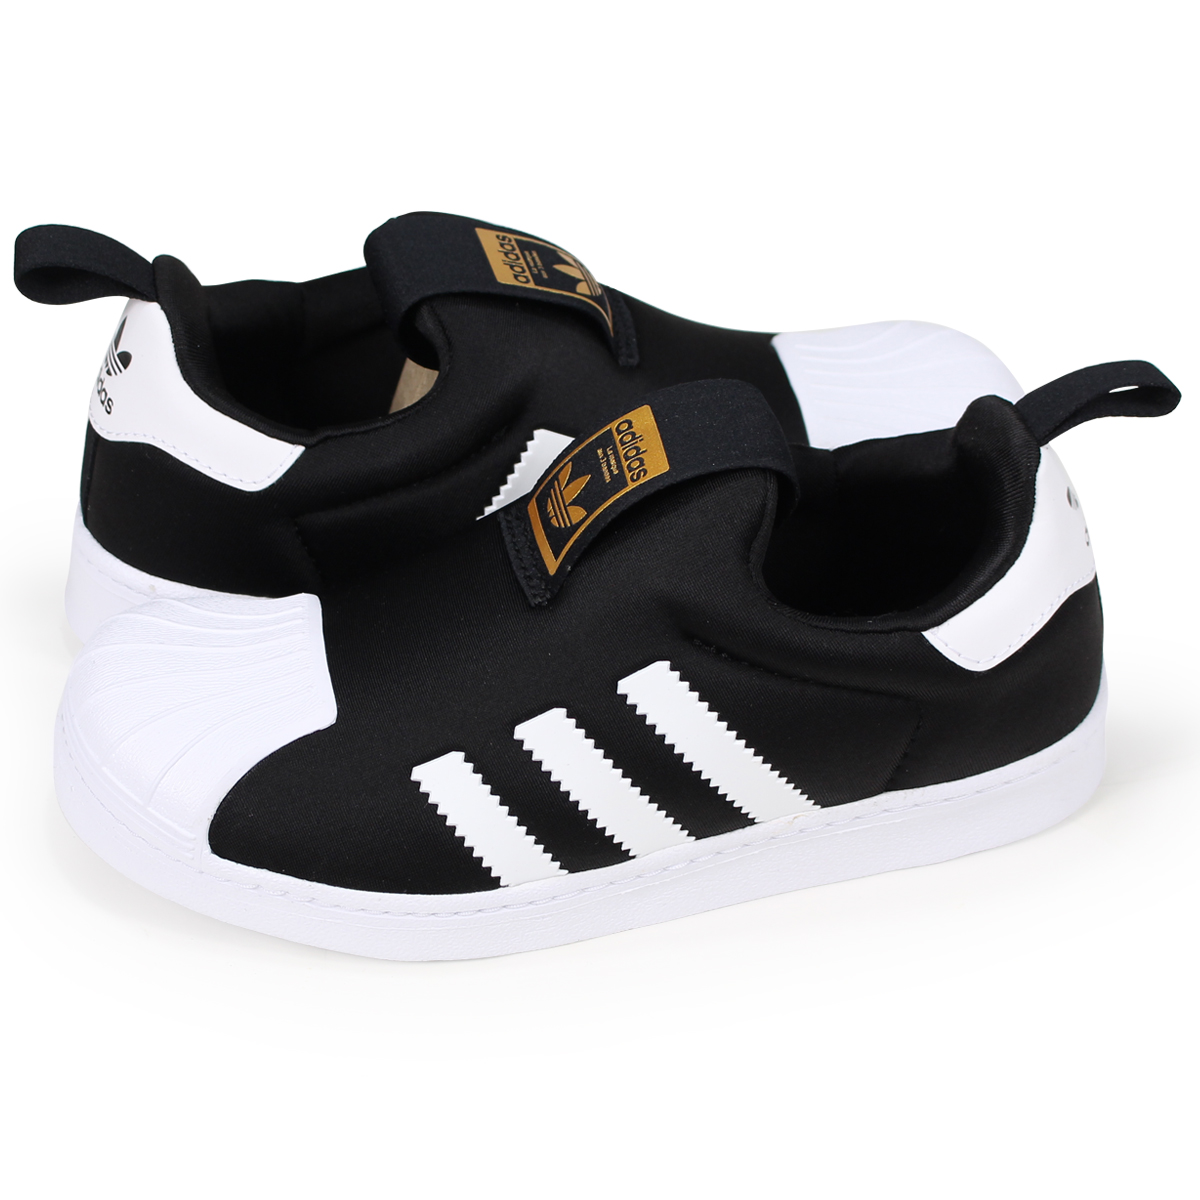 best sneakers b0ebb 6155b adidas Originals SUPERSTAR 360 Adidas originals superstar sneakers kids  black black S32130 [the 8/21 additional arrival]